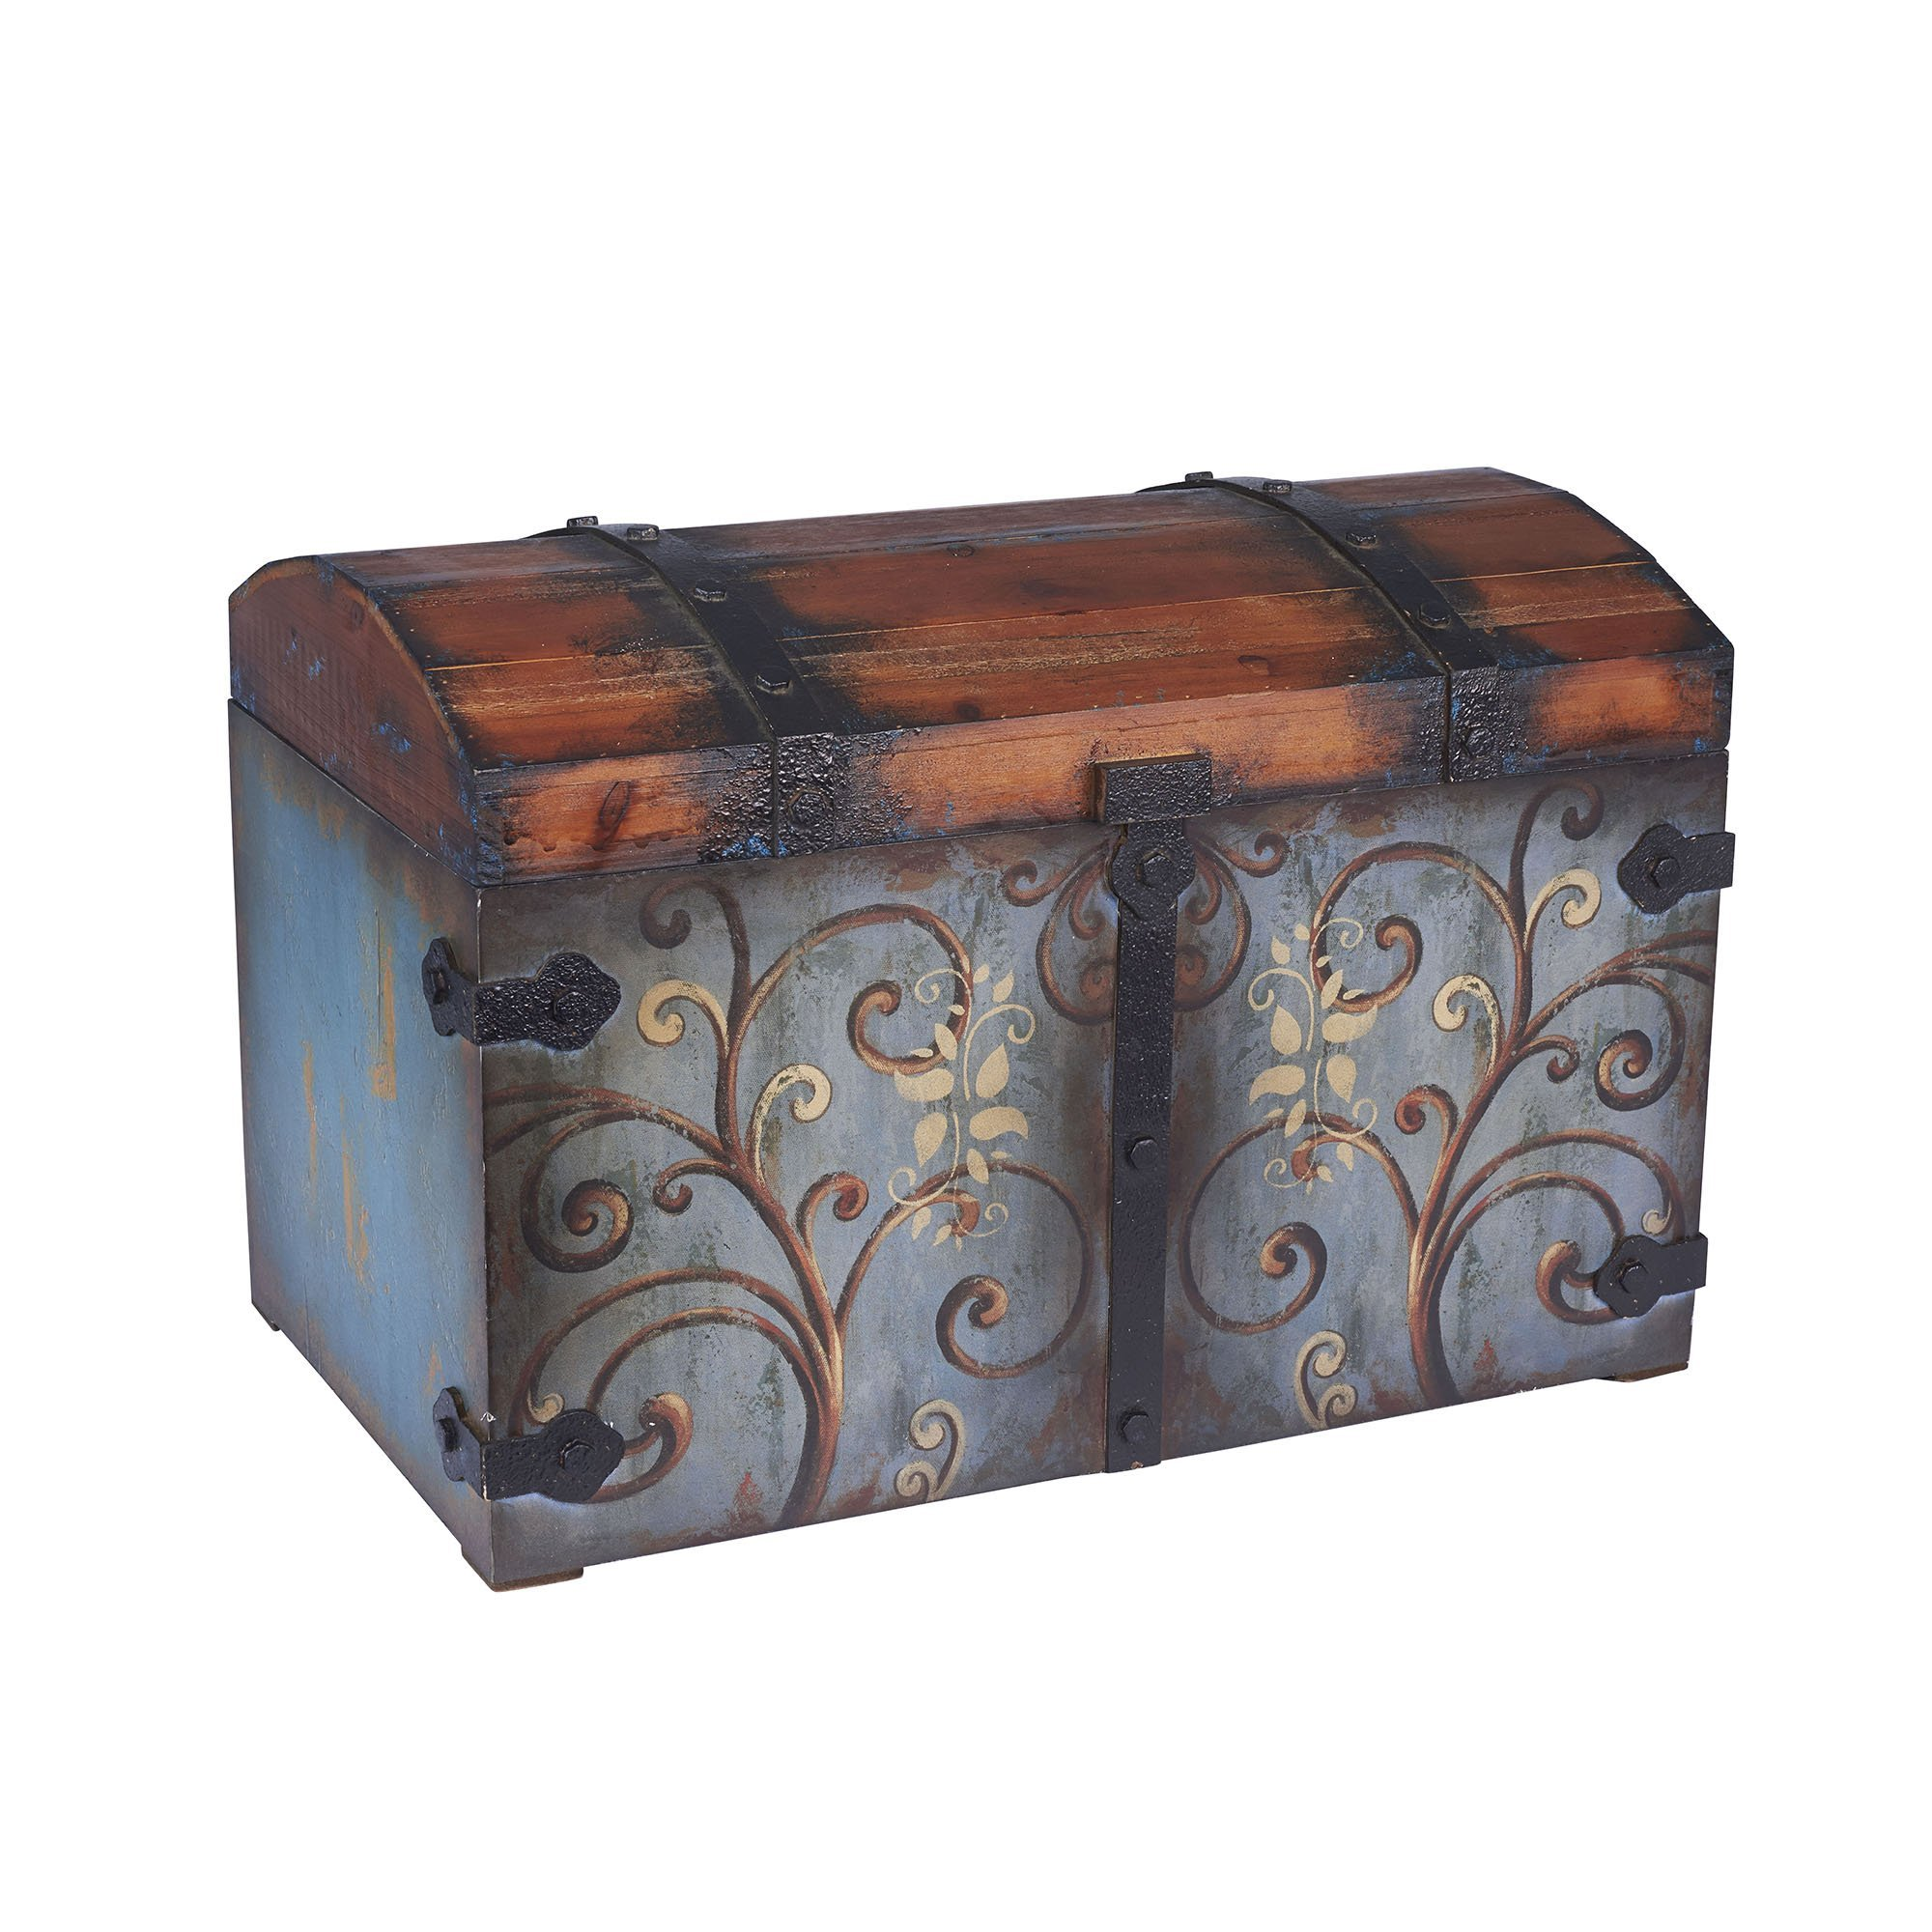 Household Essentials 9502-1 Vintage Wood Storage Trunk, Large, Blue Body/Brown Lid/Floral Design by Household Essentials